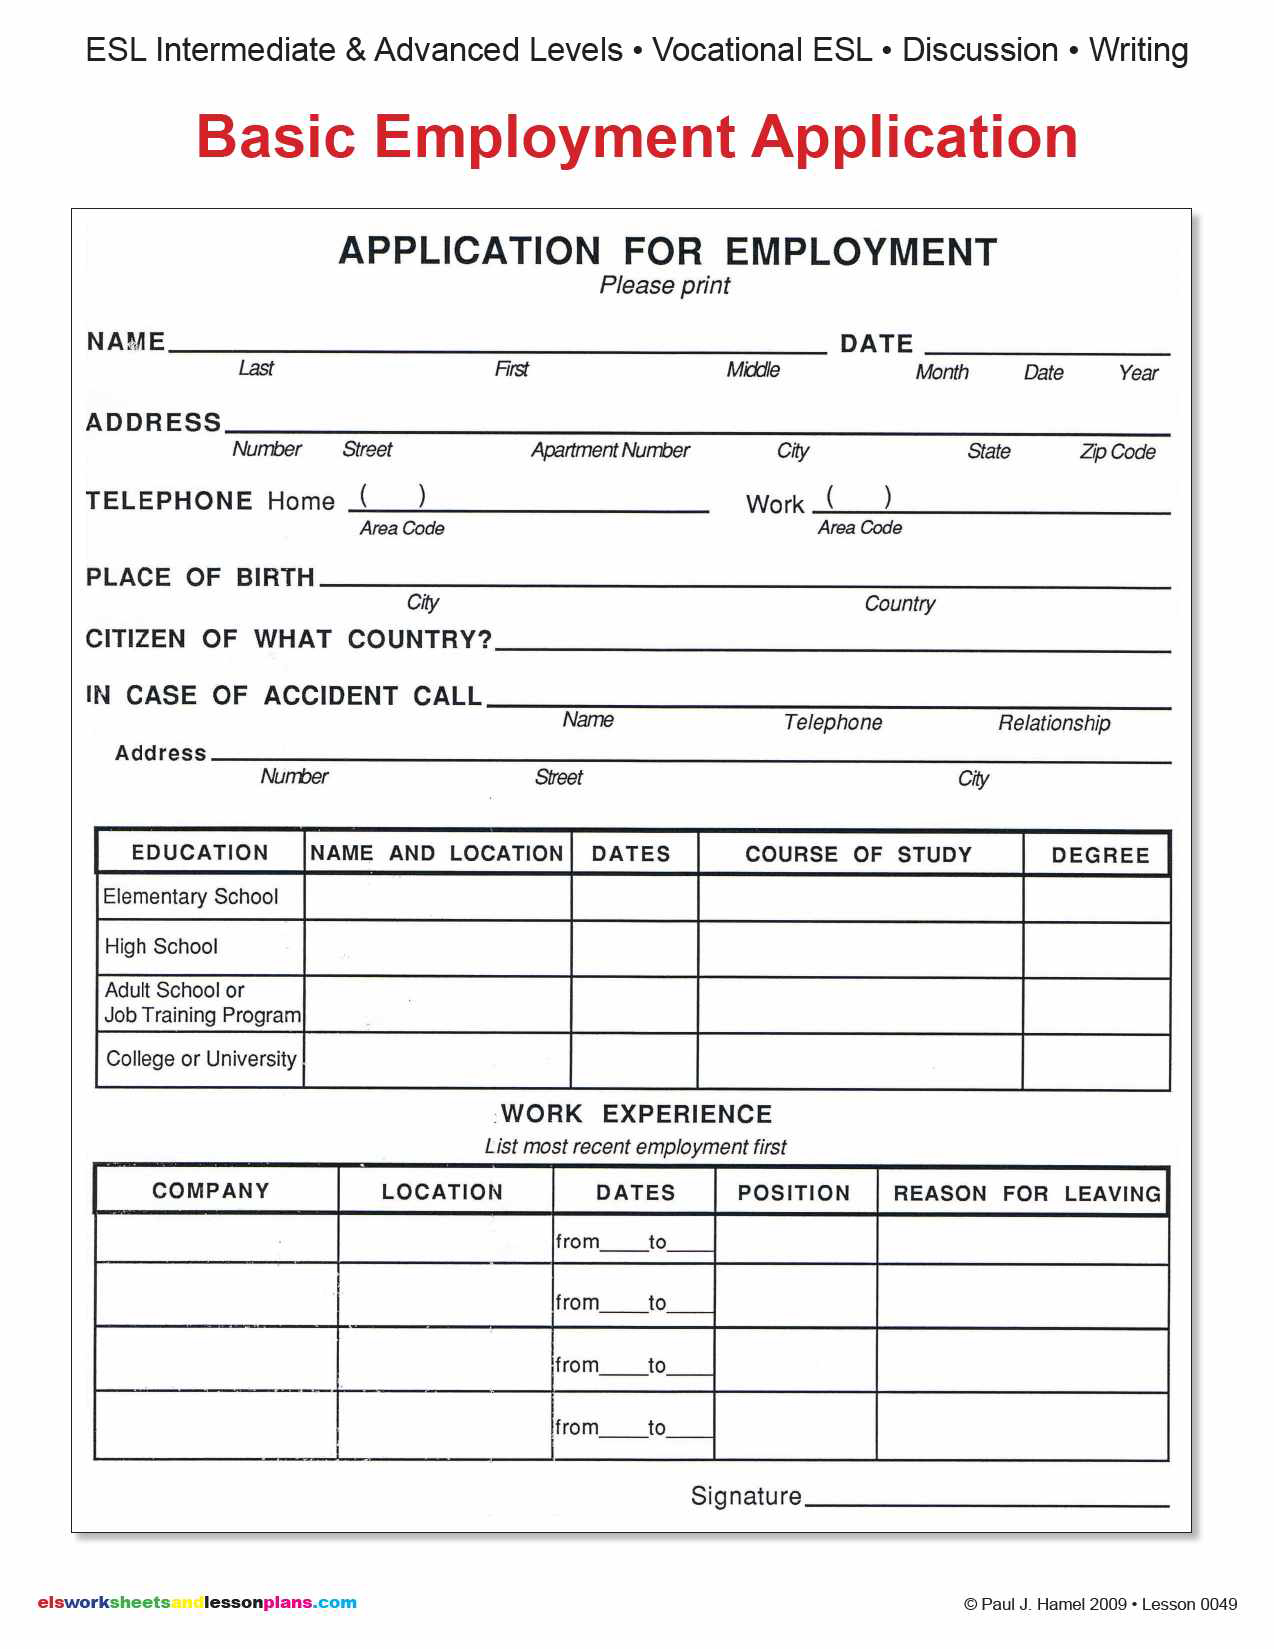 basic job application form template Success